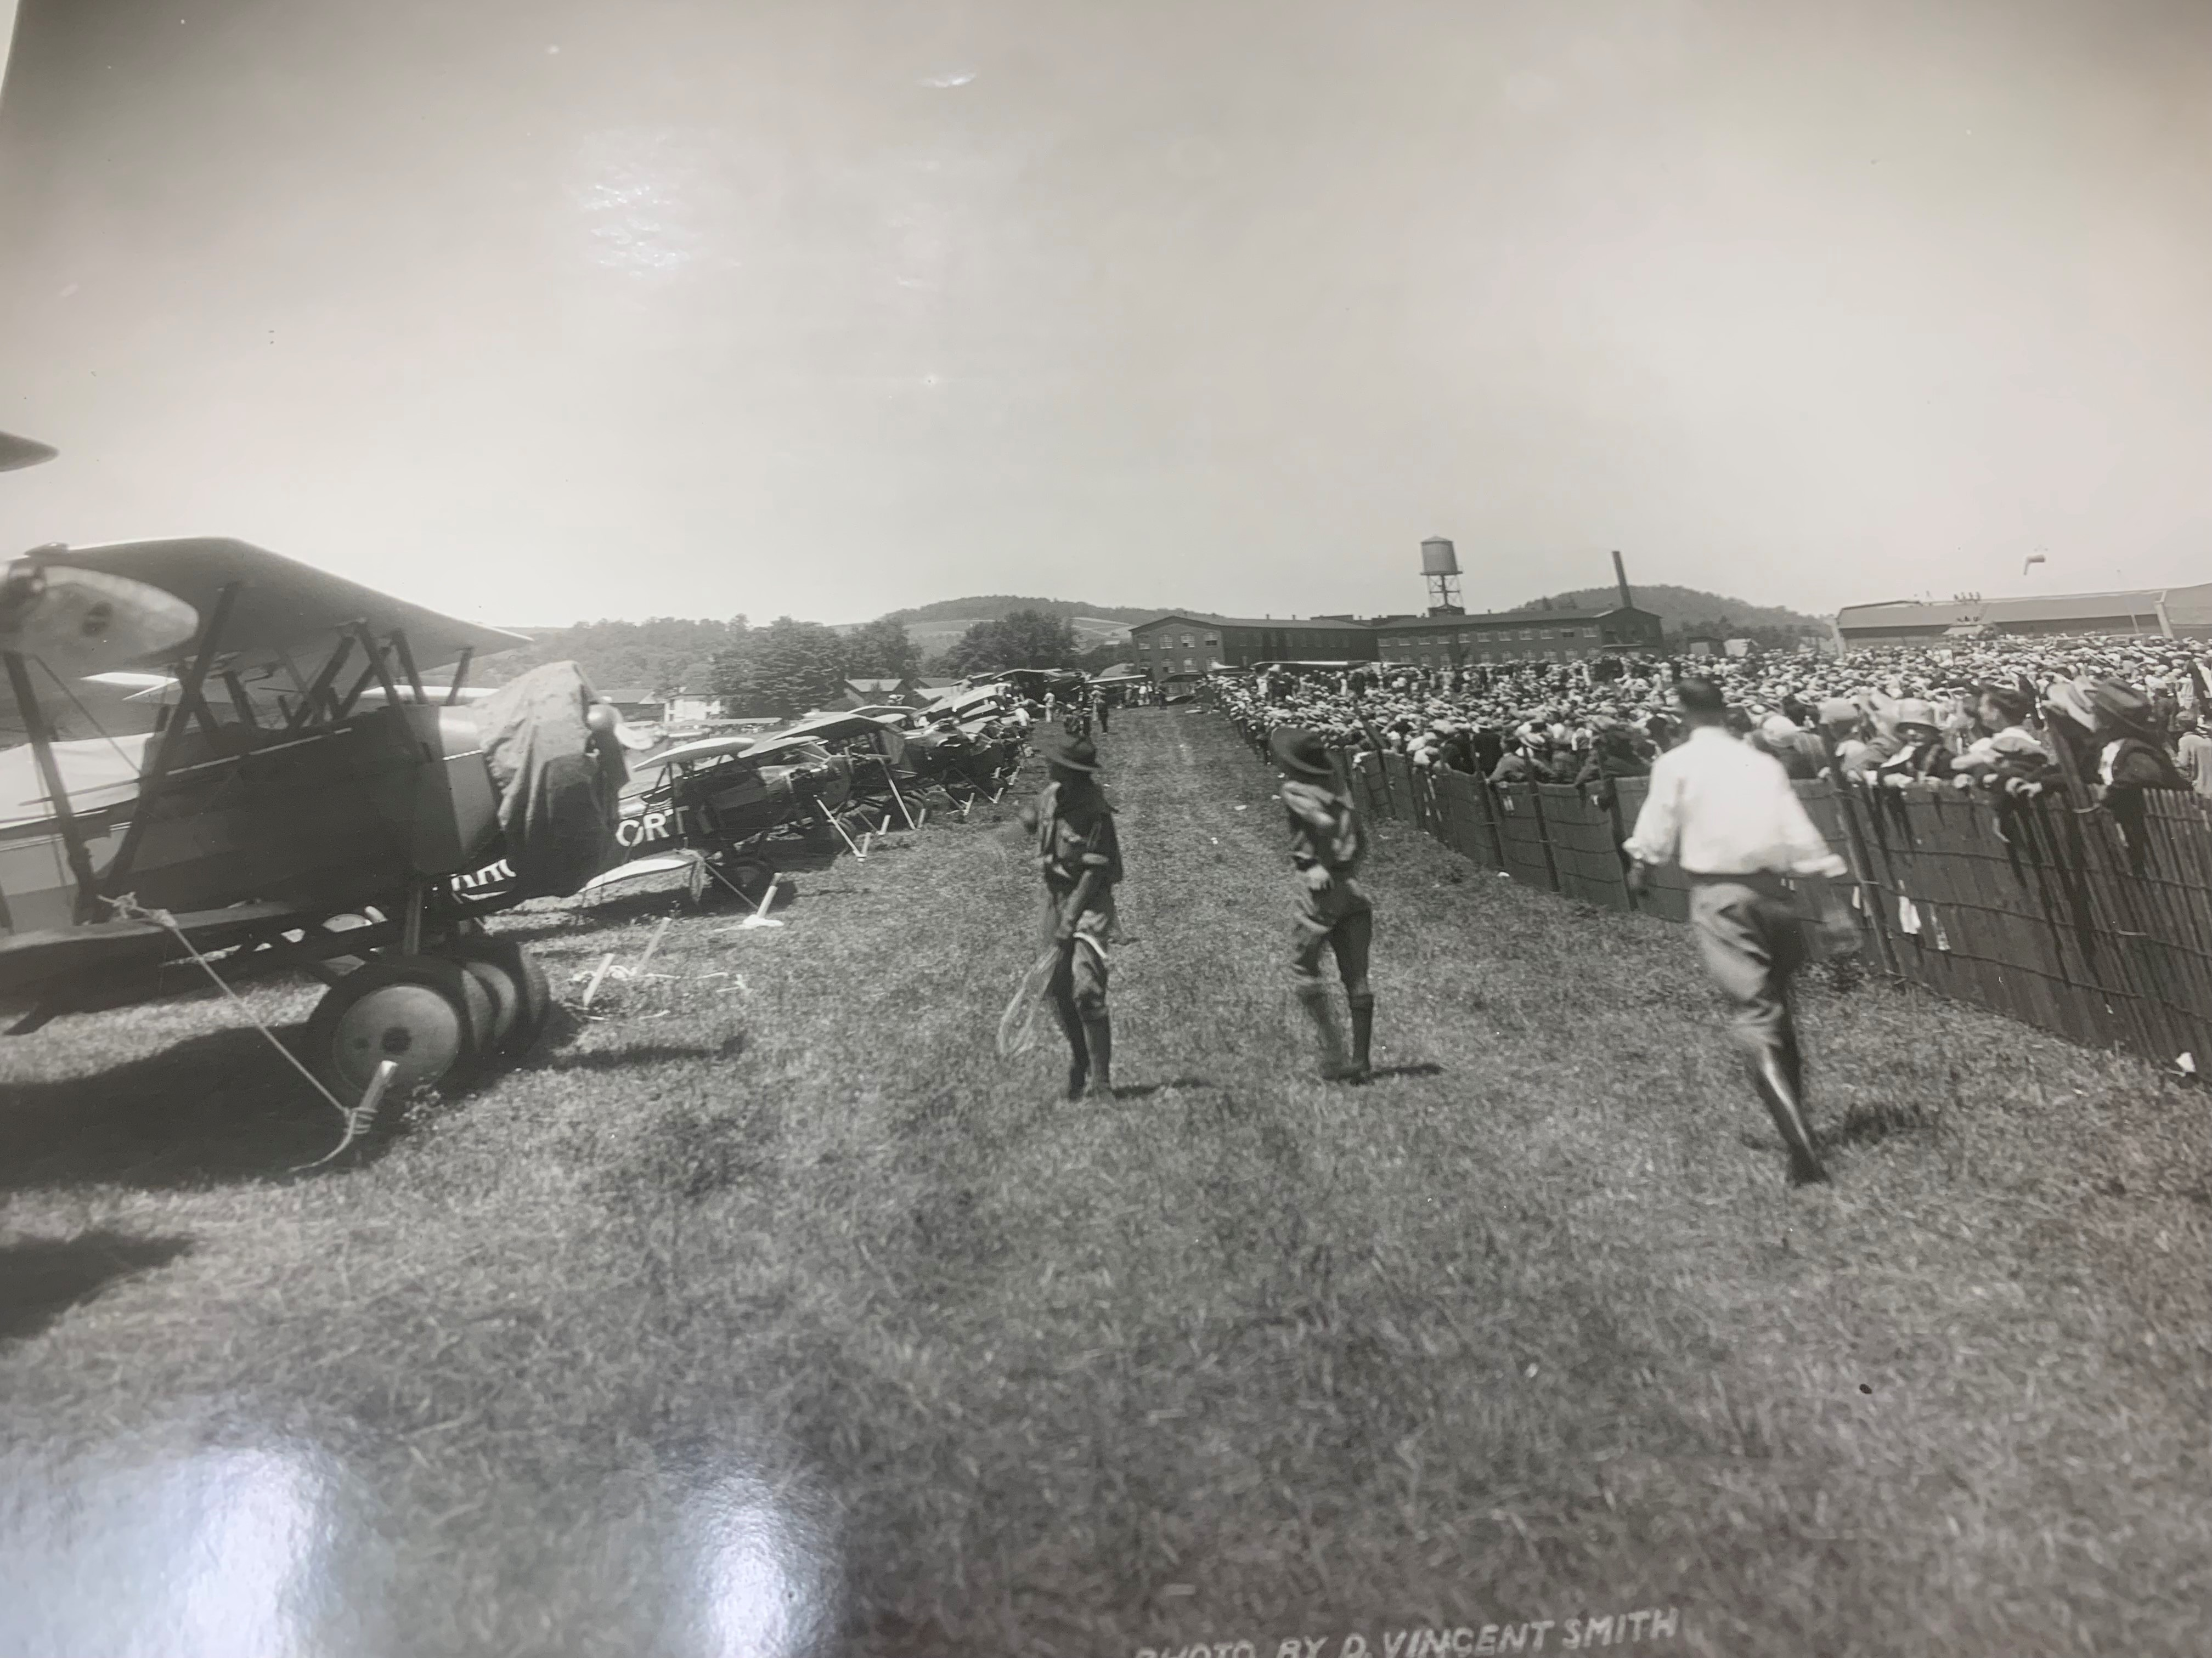 Airport Dedication July 20, 1929